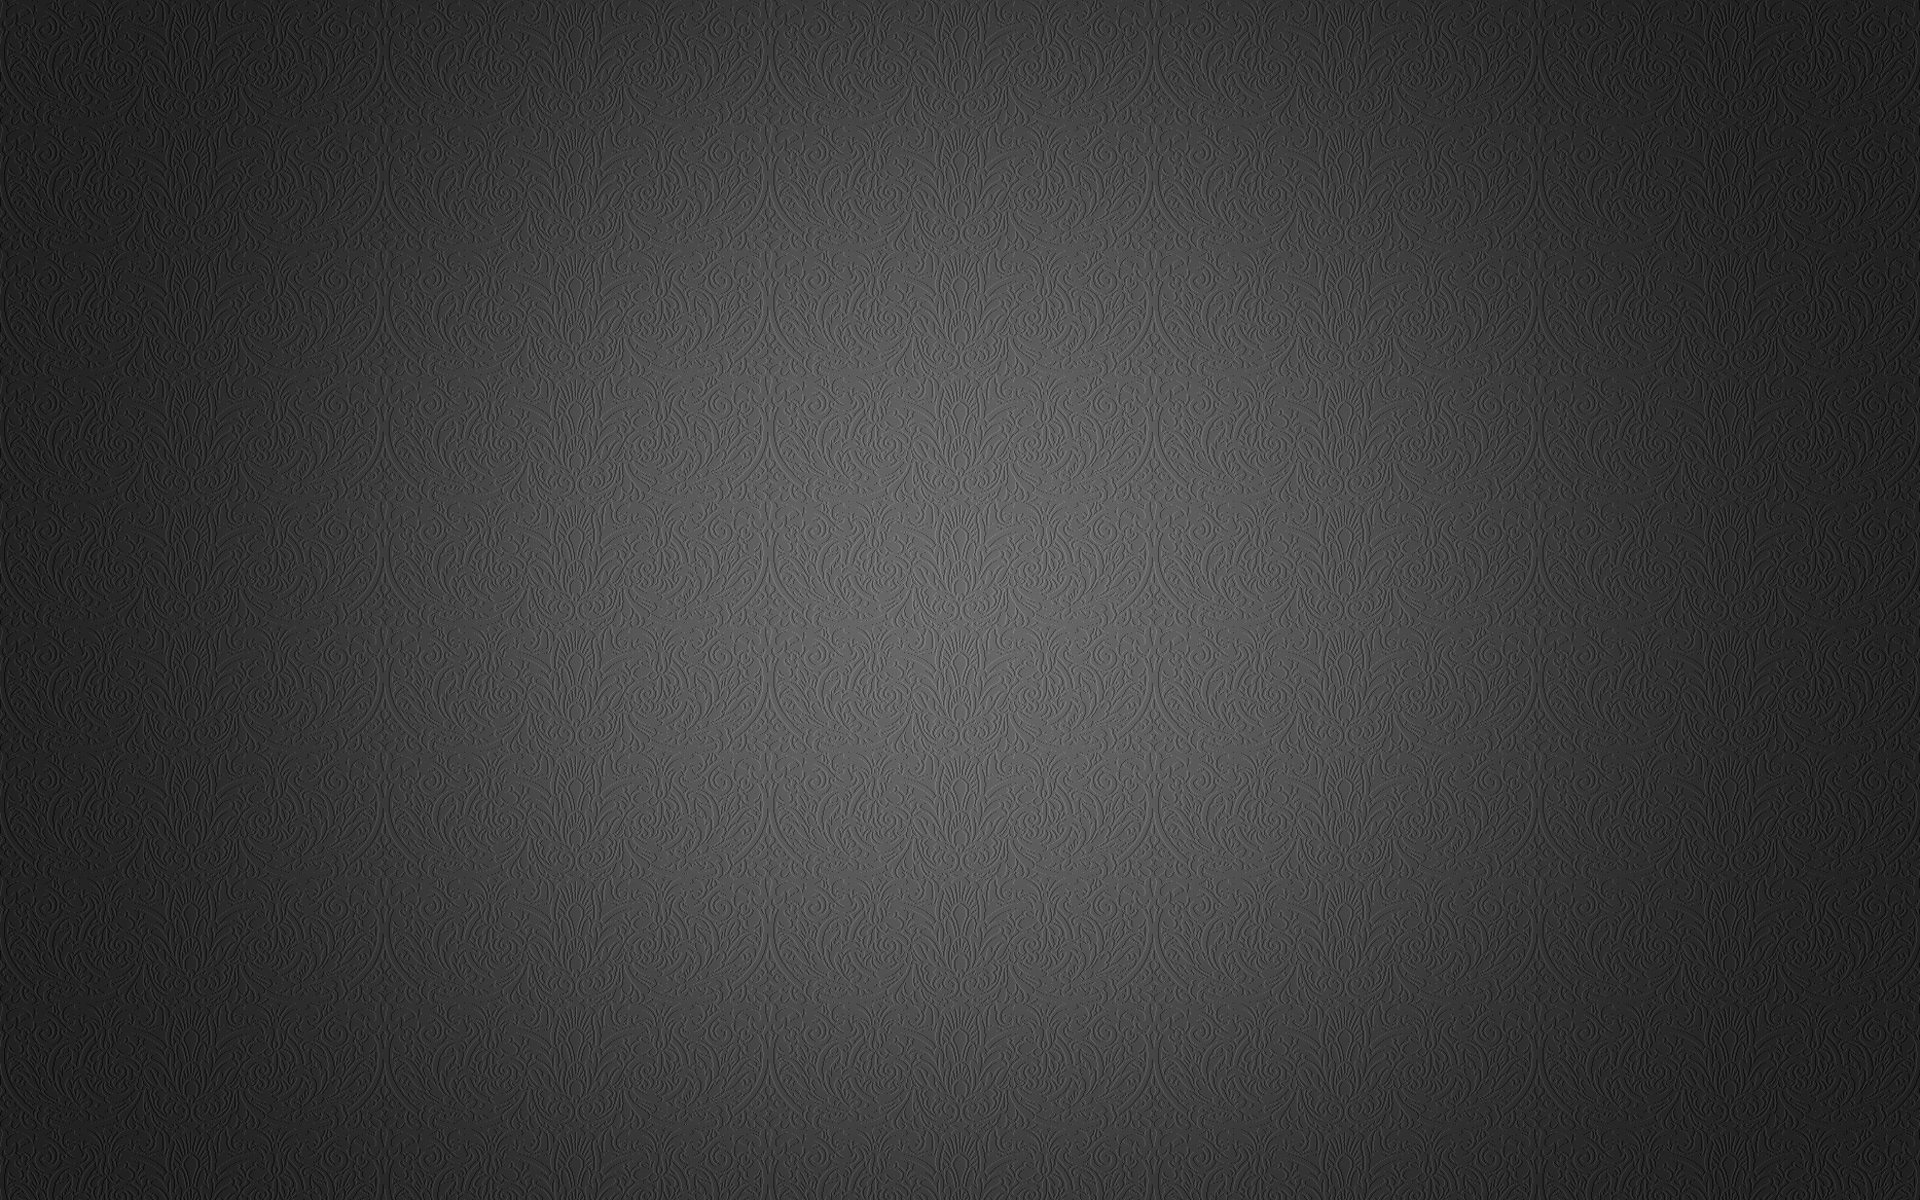 Black Grey Wallpaper - WallpaperSafari